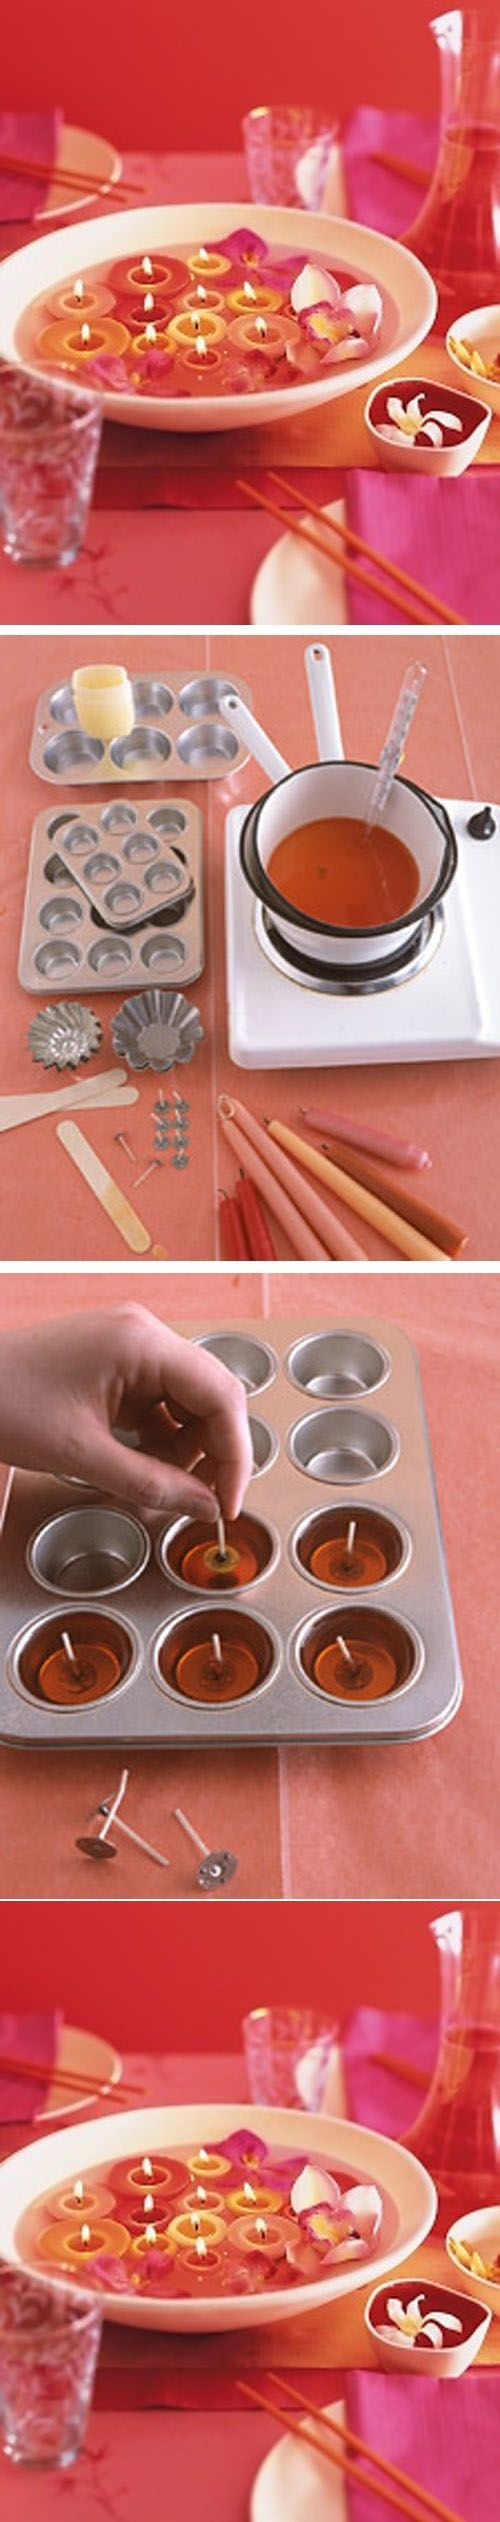 Beautiful Candle Craft | DIY & Crafts Tutorials